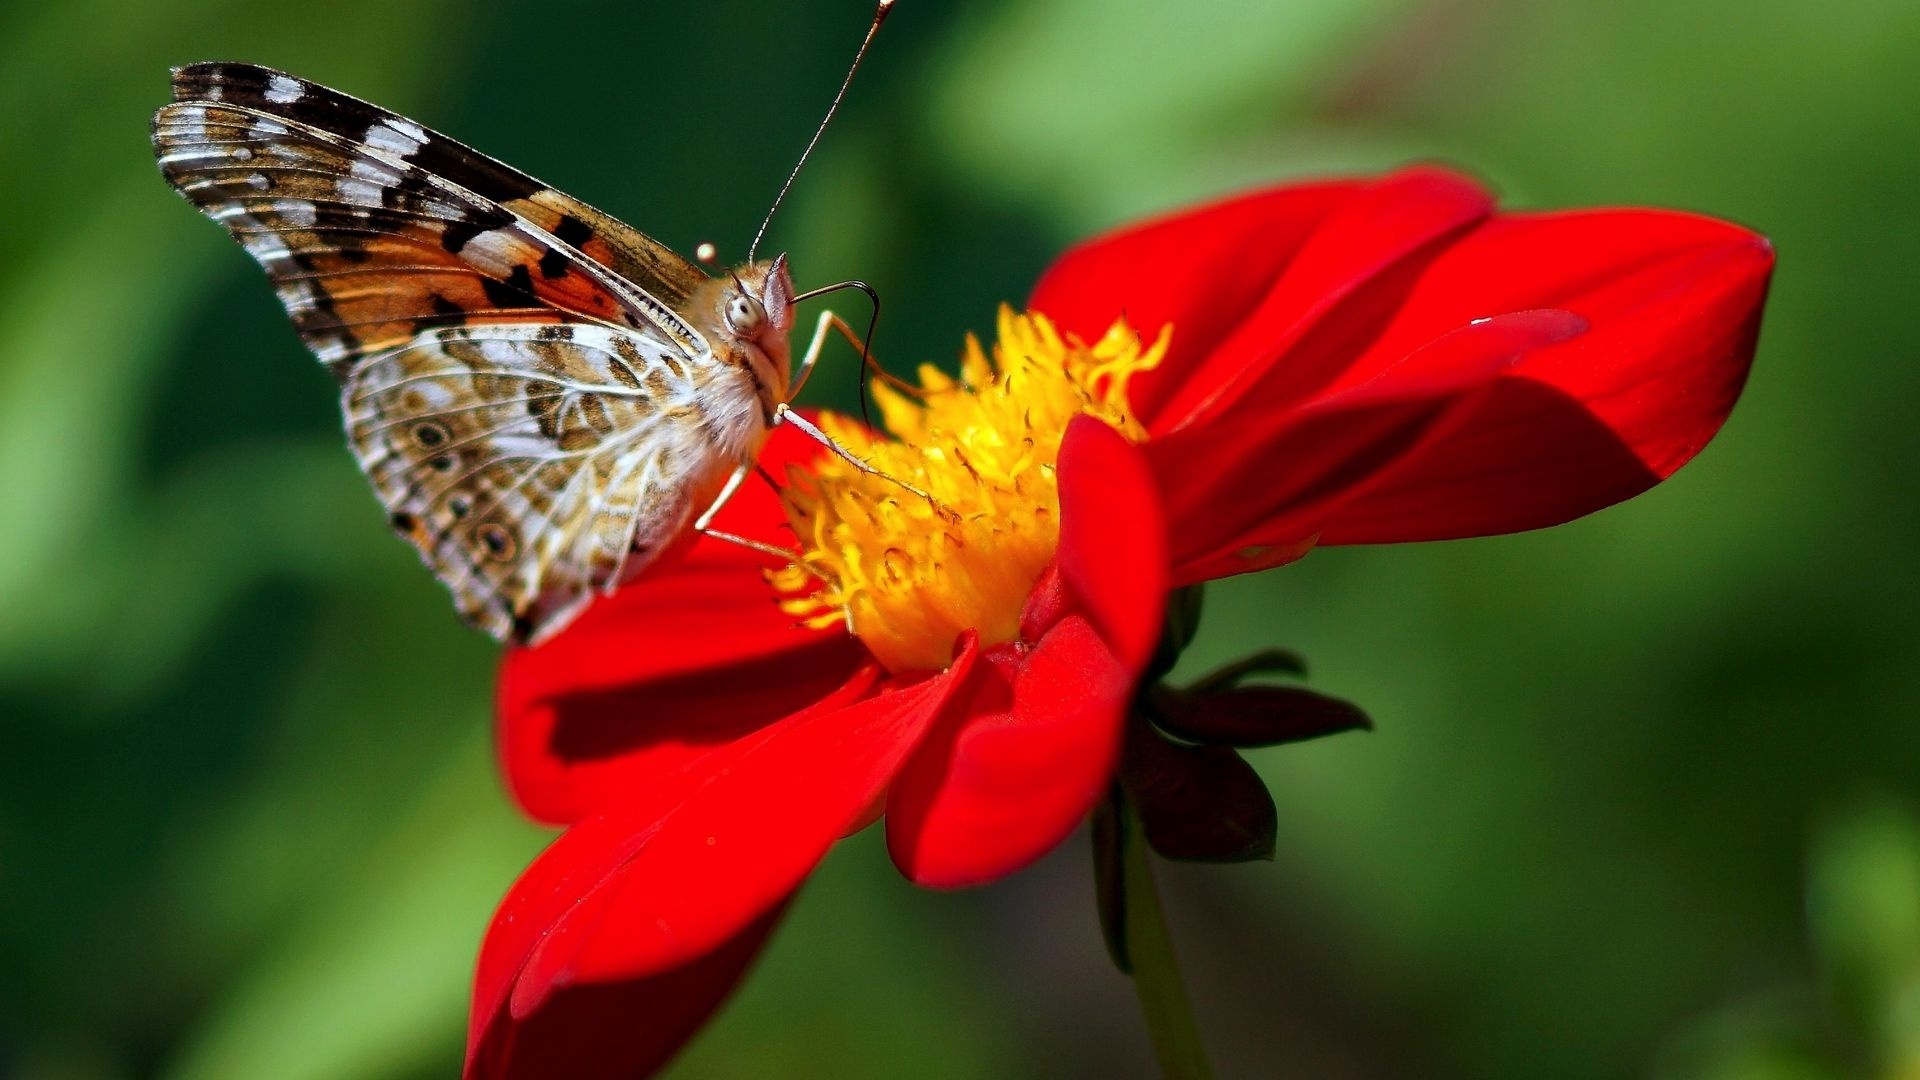 Butterfly On A Flower wallpaper for pc